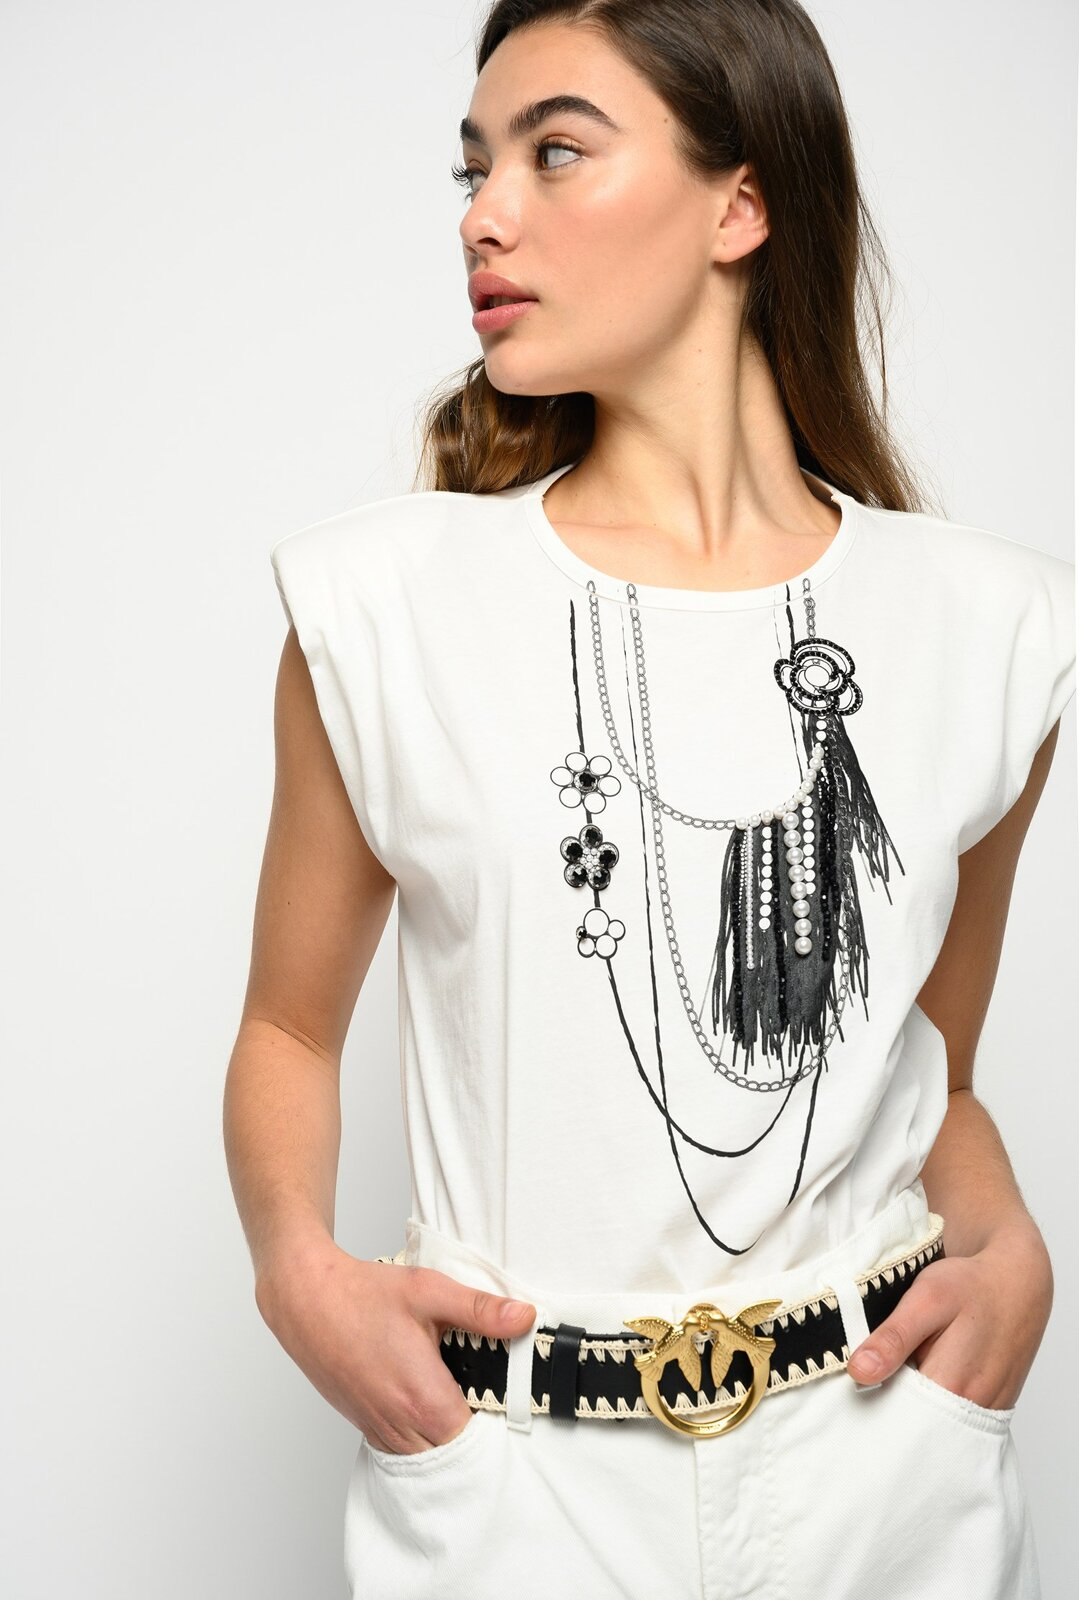 Top With Necklace And Pearls Print - Pinko